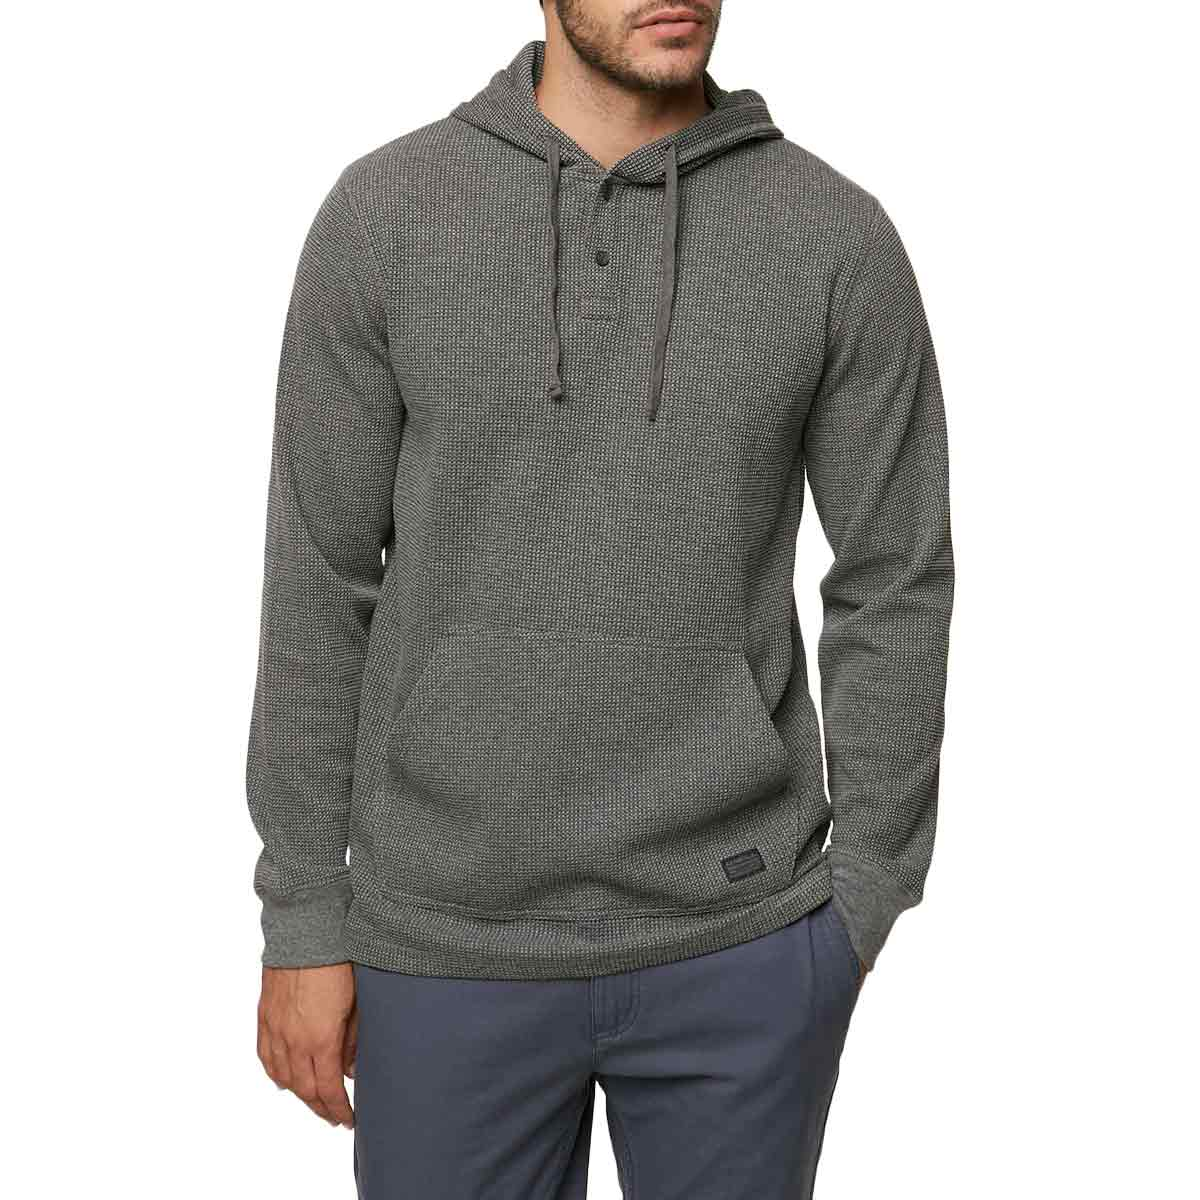 ONeill Guys Olympia Henley Hooded Pullover - Black, XL